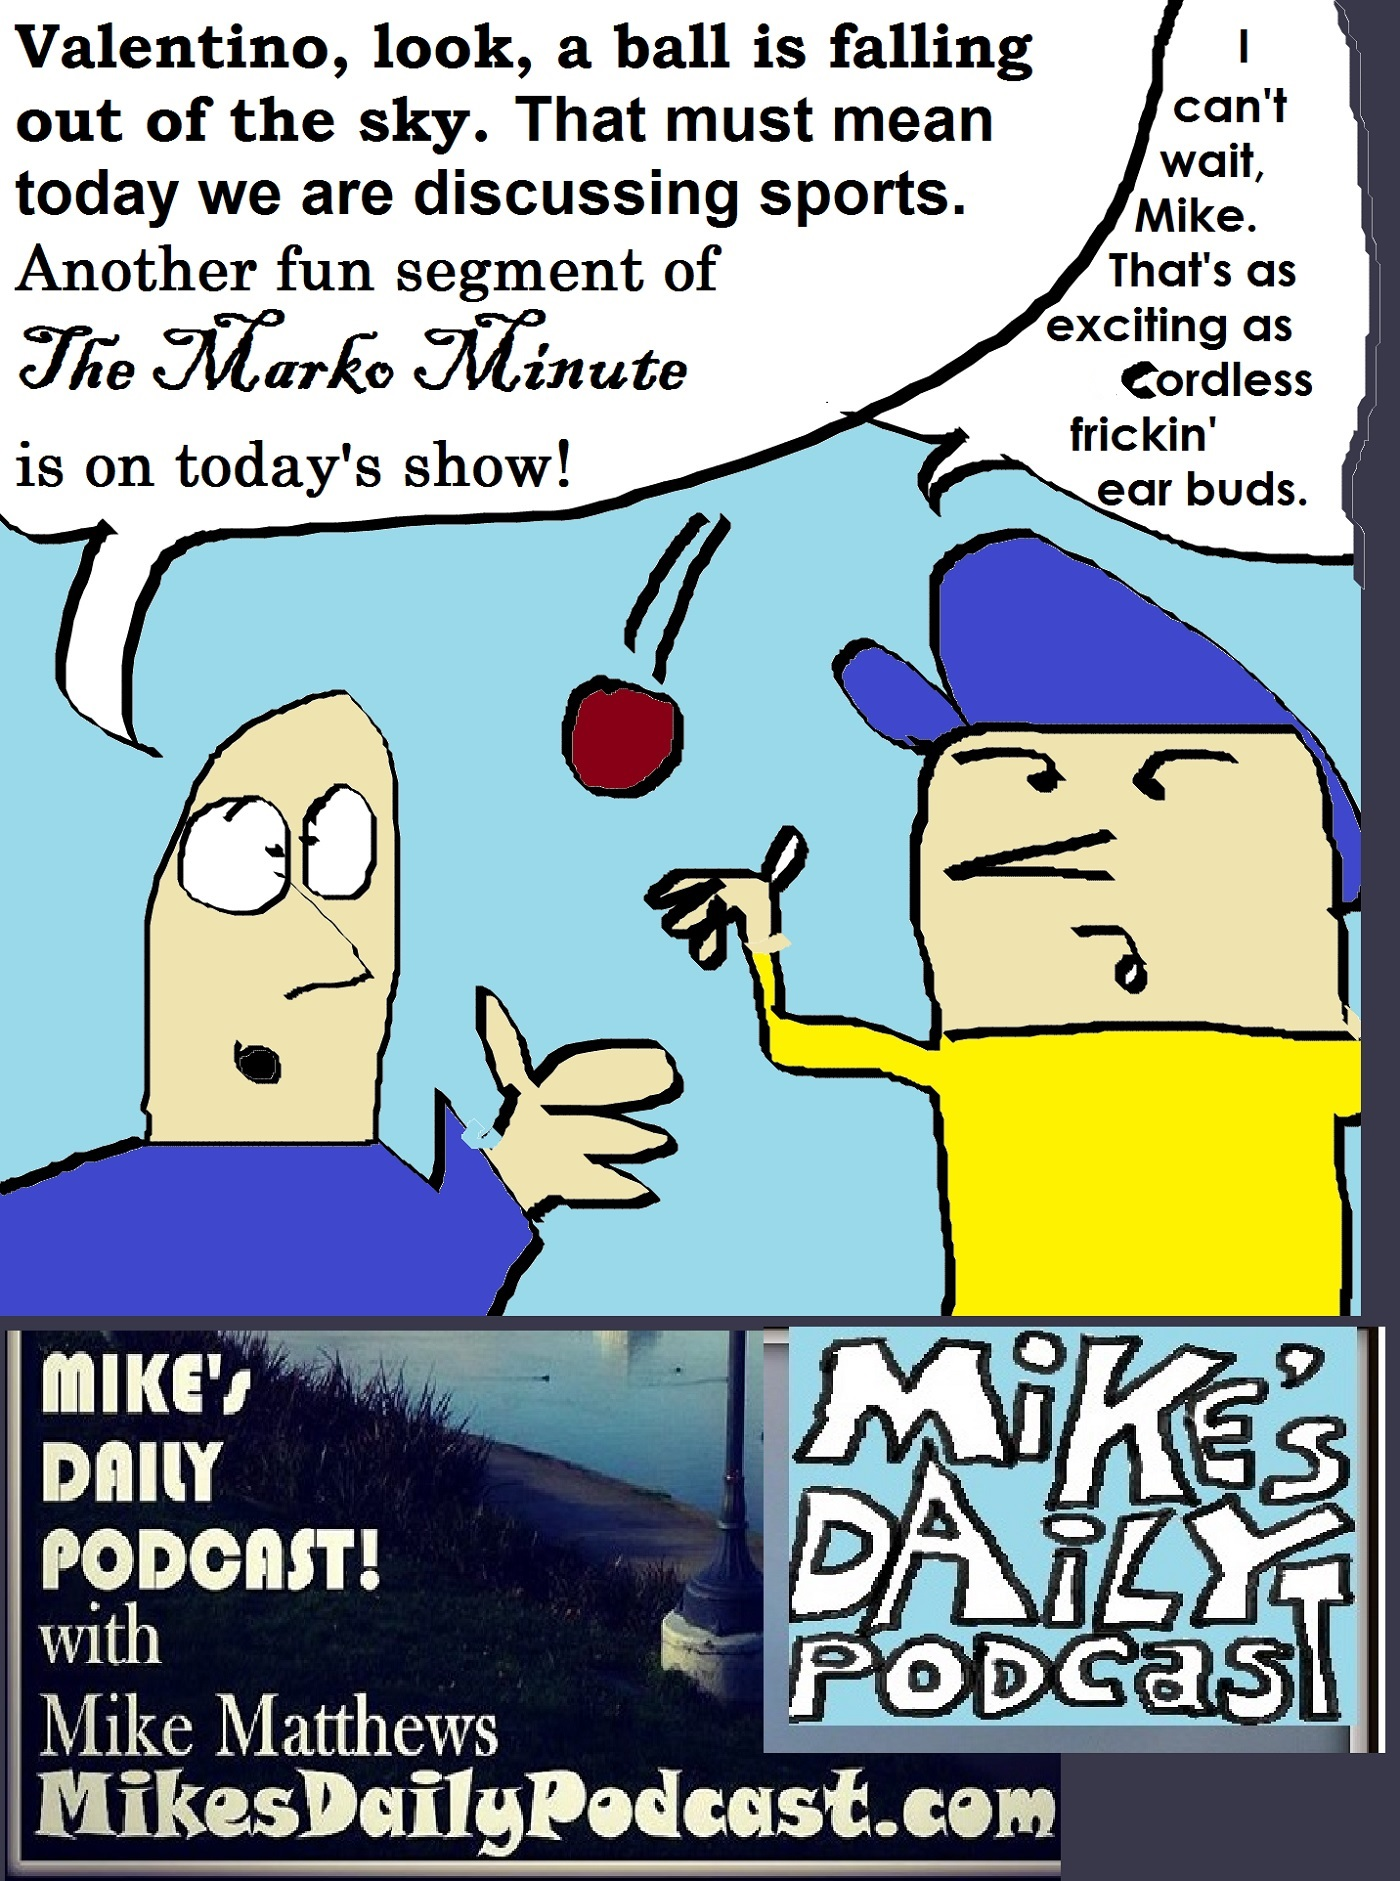 mikes-daily-podcast-1171-valentino-sports-ear-buds